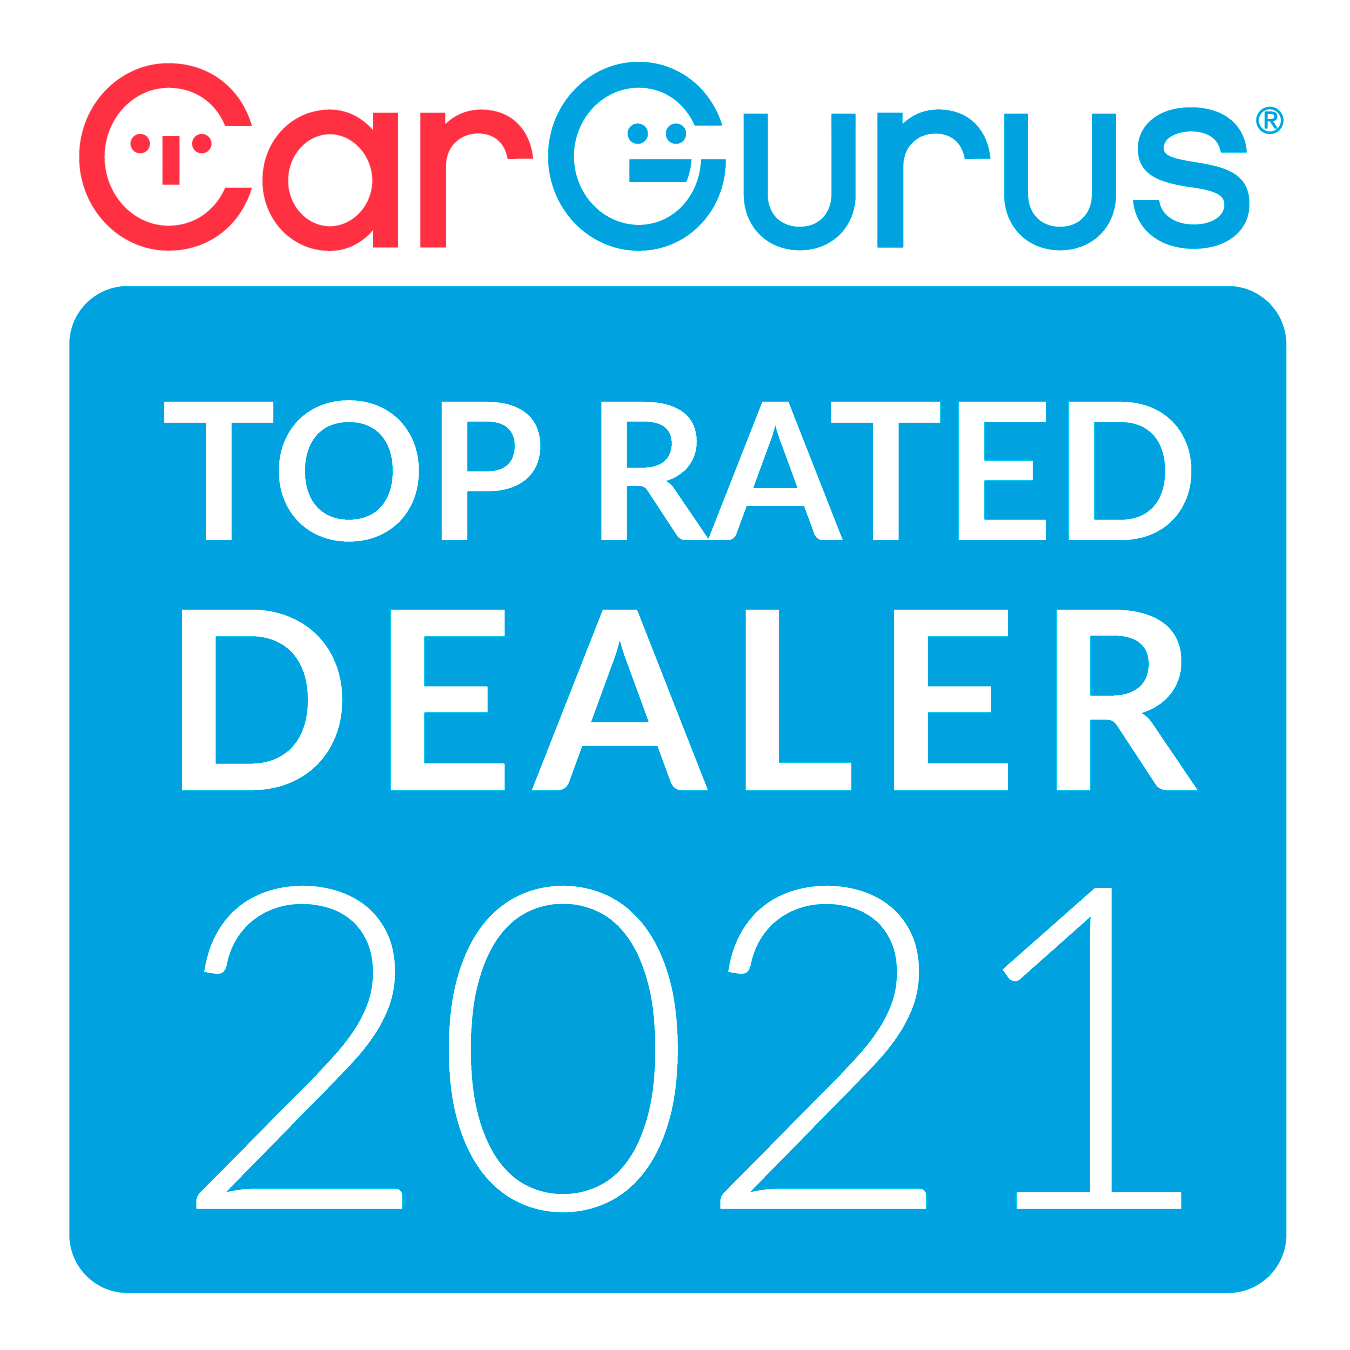 2021 Top Rated Dealer Badge